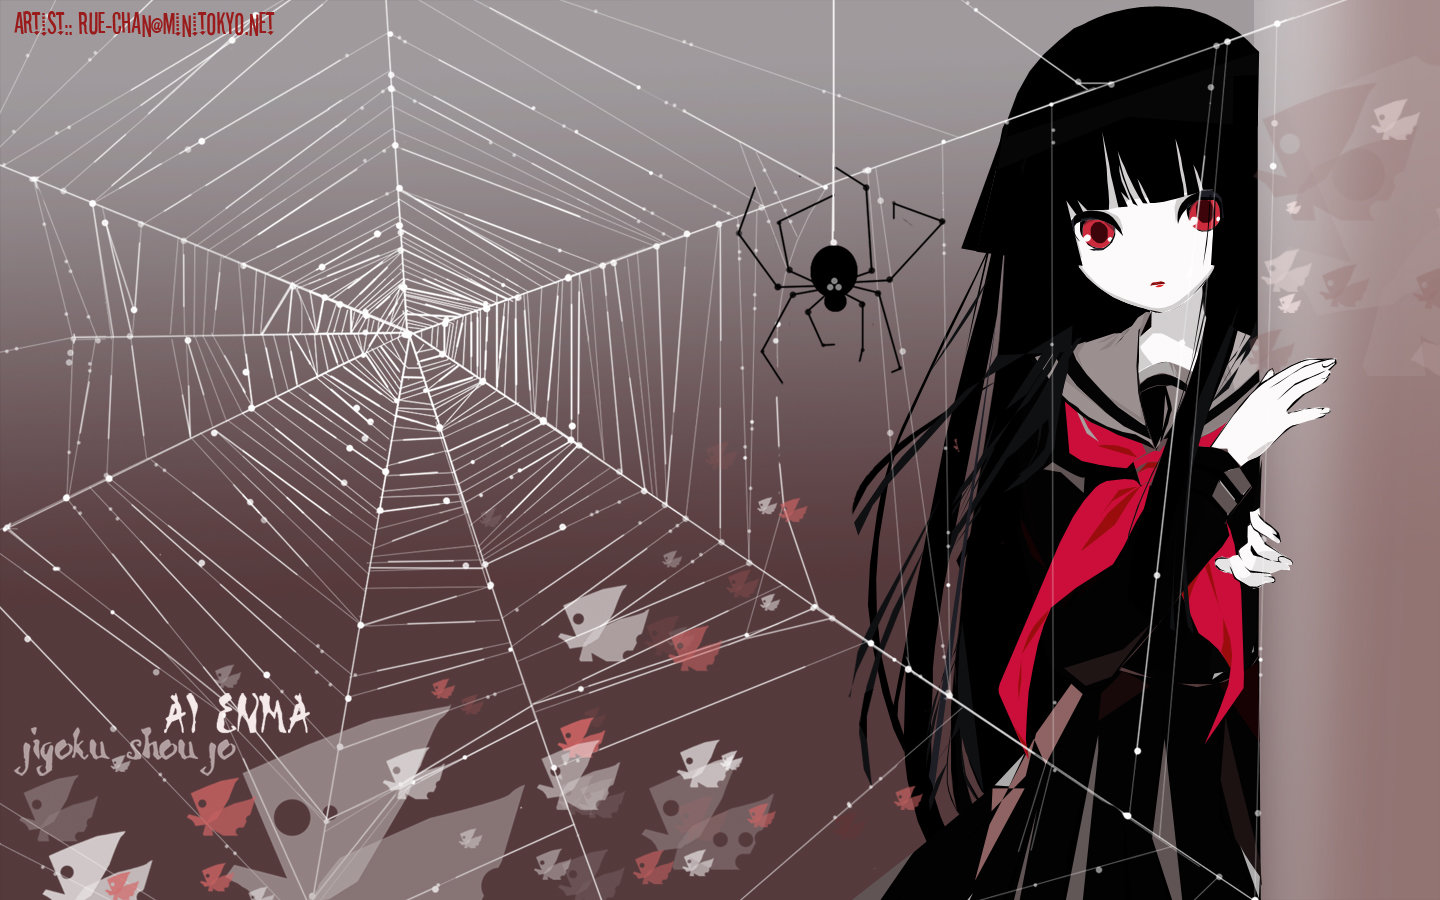 Download hd 1440x900 Jigoku Shojo PC background ID:353909 for free